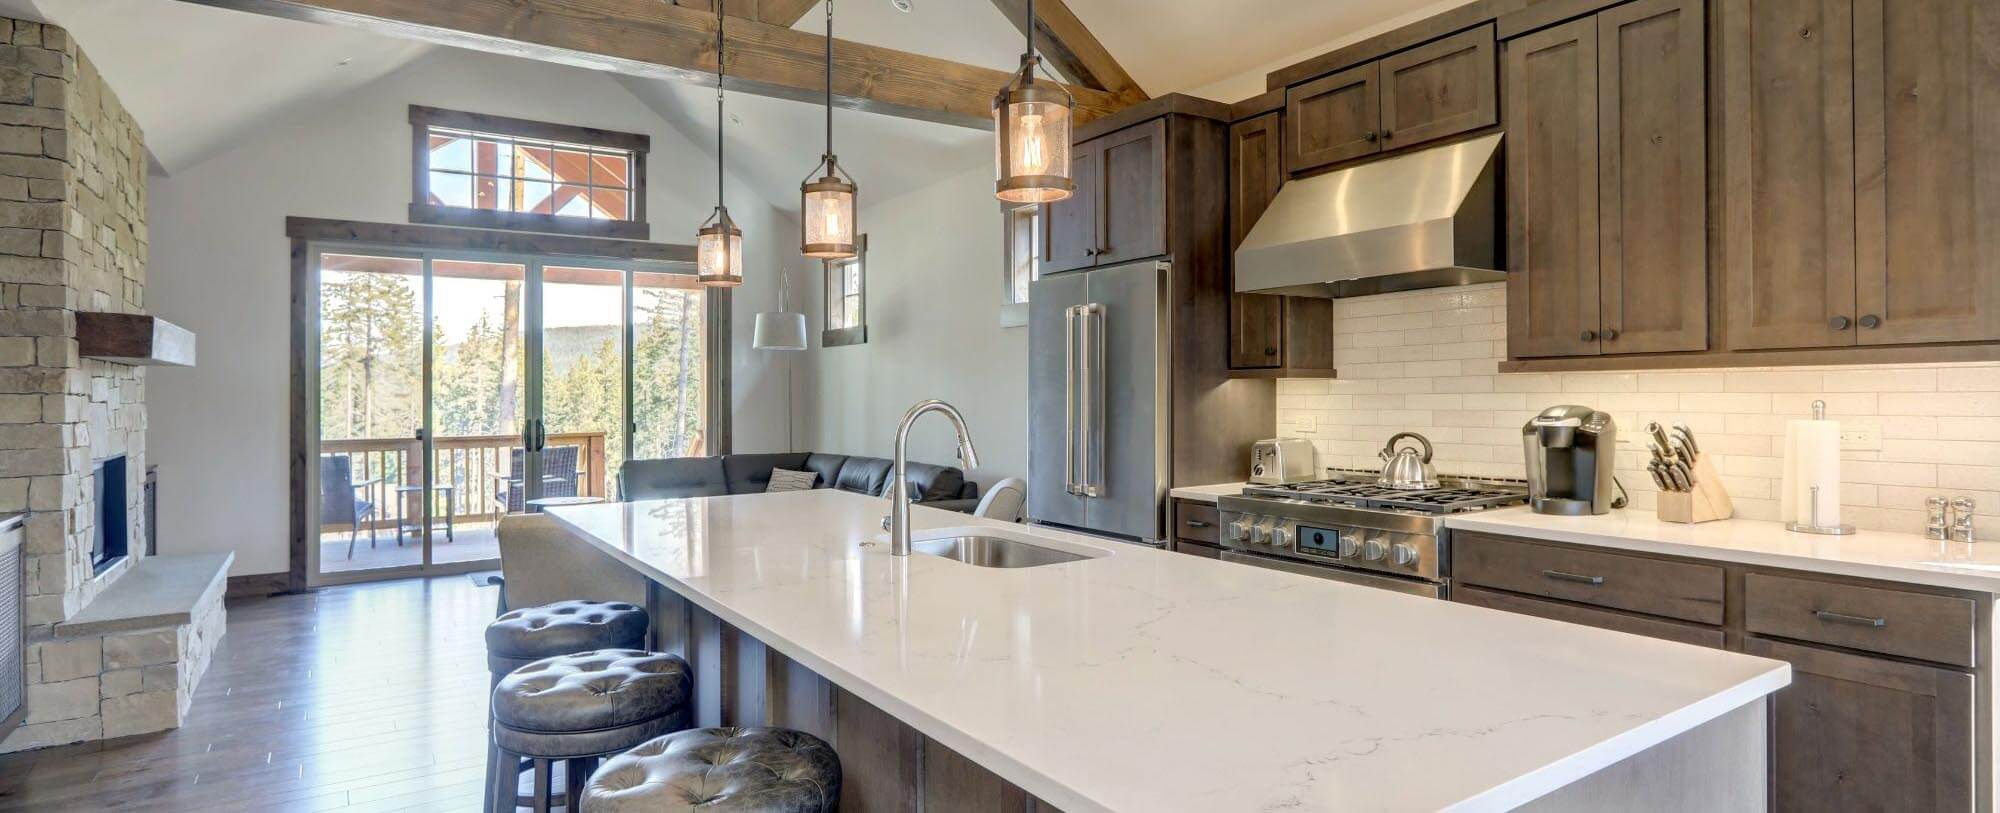 Large Kitchen with Dark Cabinets and Large Marble Island